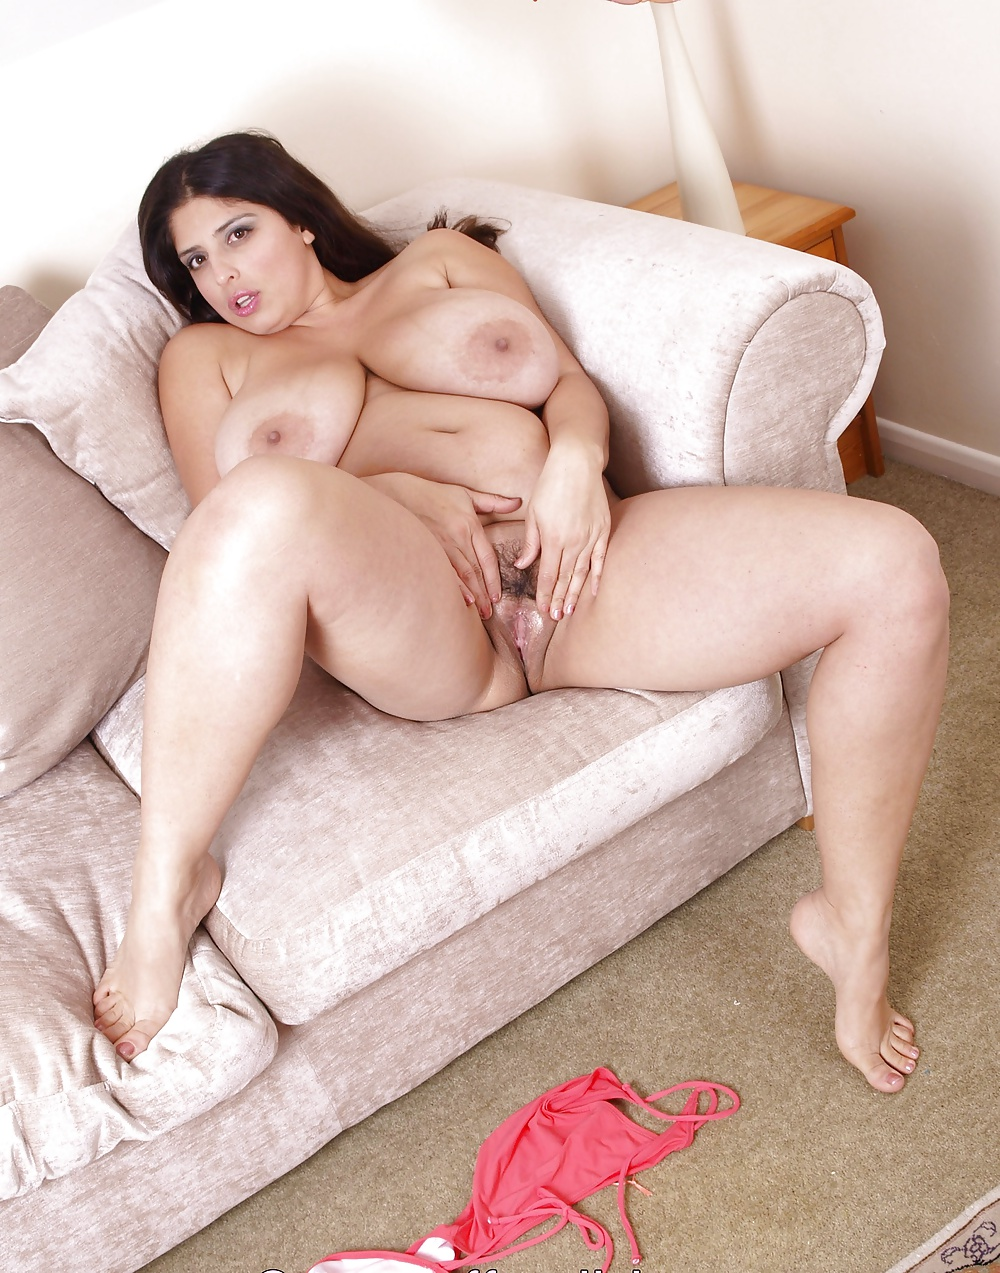 Kerry marie legs porn, milf girls pictures